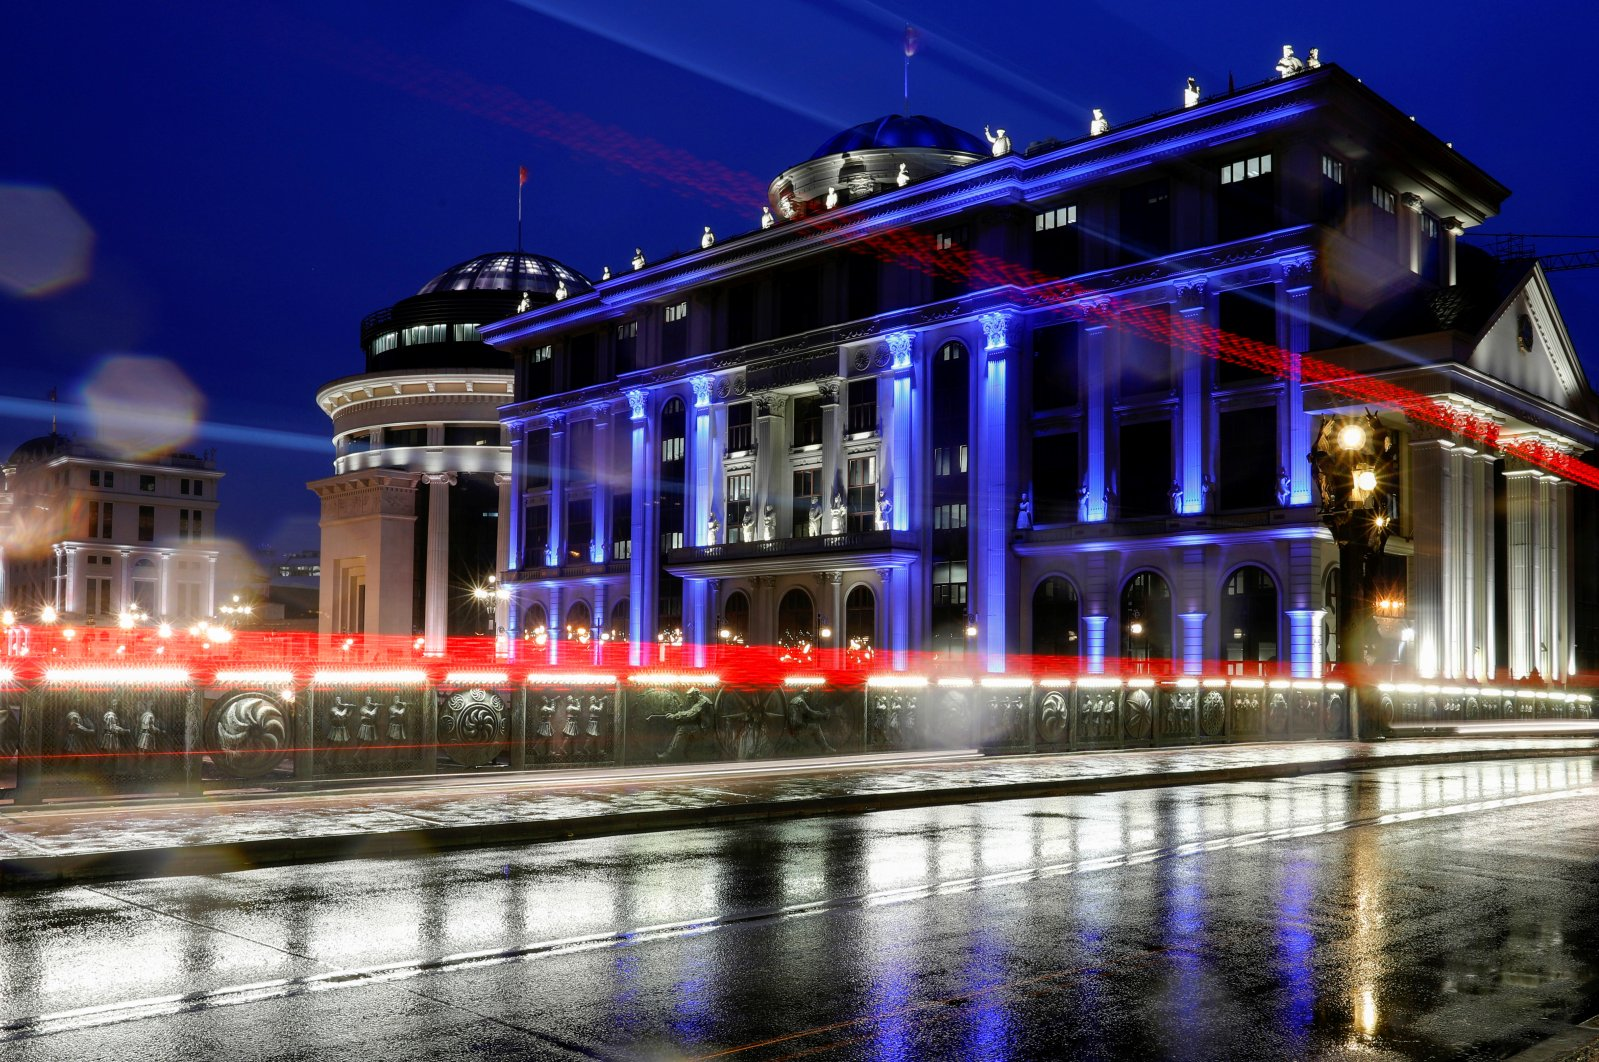 The offices of the Ministry of Foreign Affairs of North Macedonia have changed its lights to blue to mark North Macedonia officially becomes the 30th member of the NATO alliance in Skopje, North Macedonia, Friday, March 27, 2020. (REUTERS)